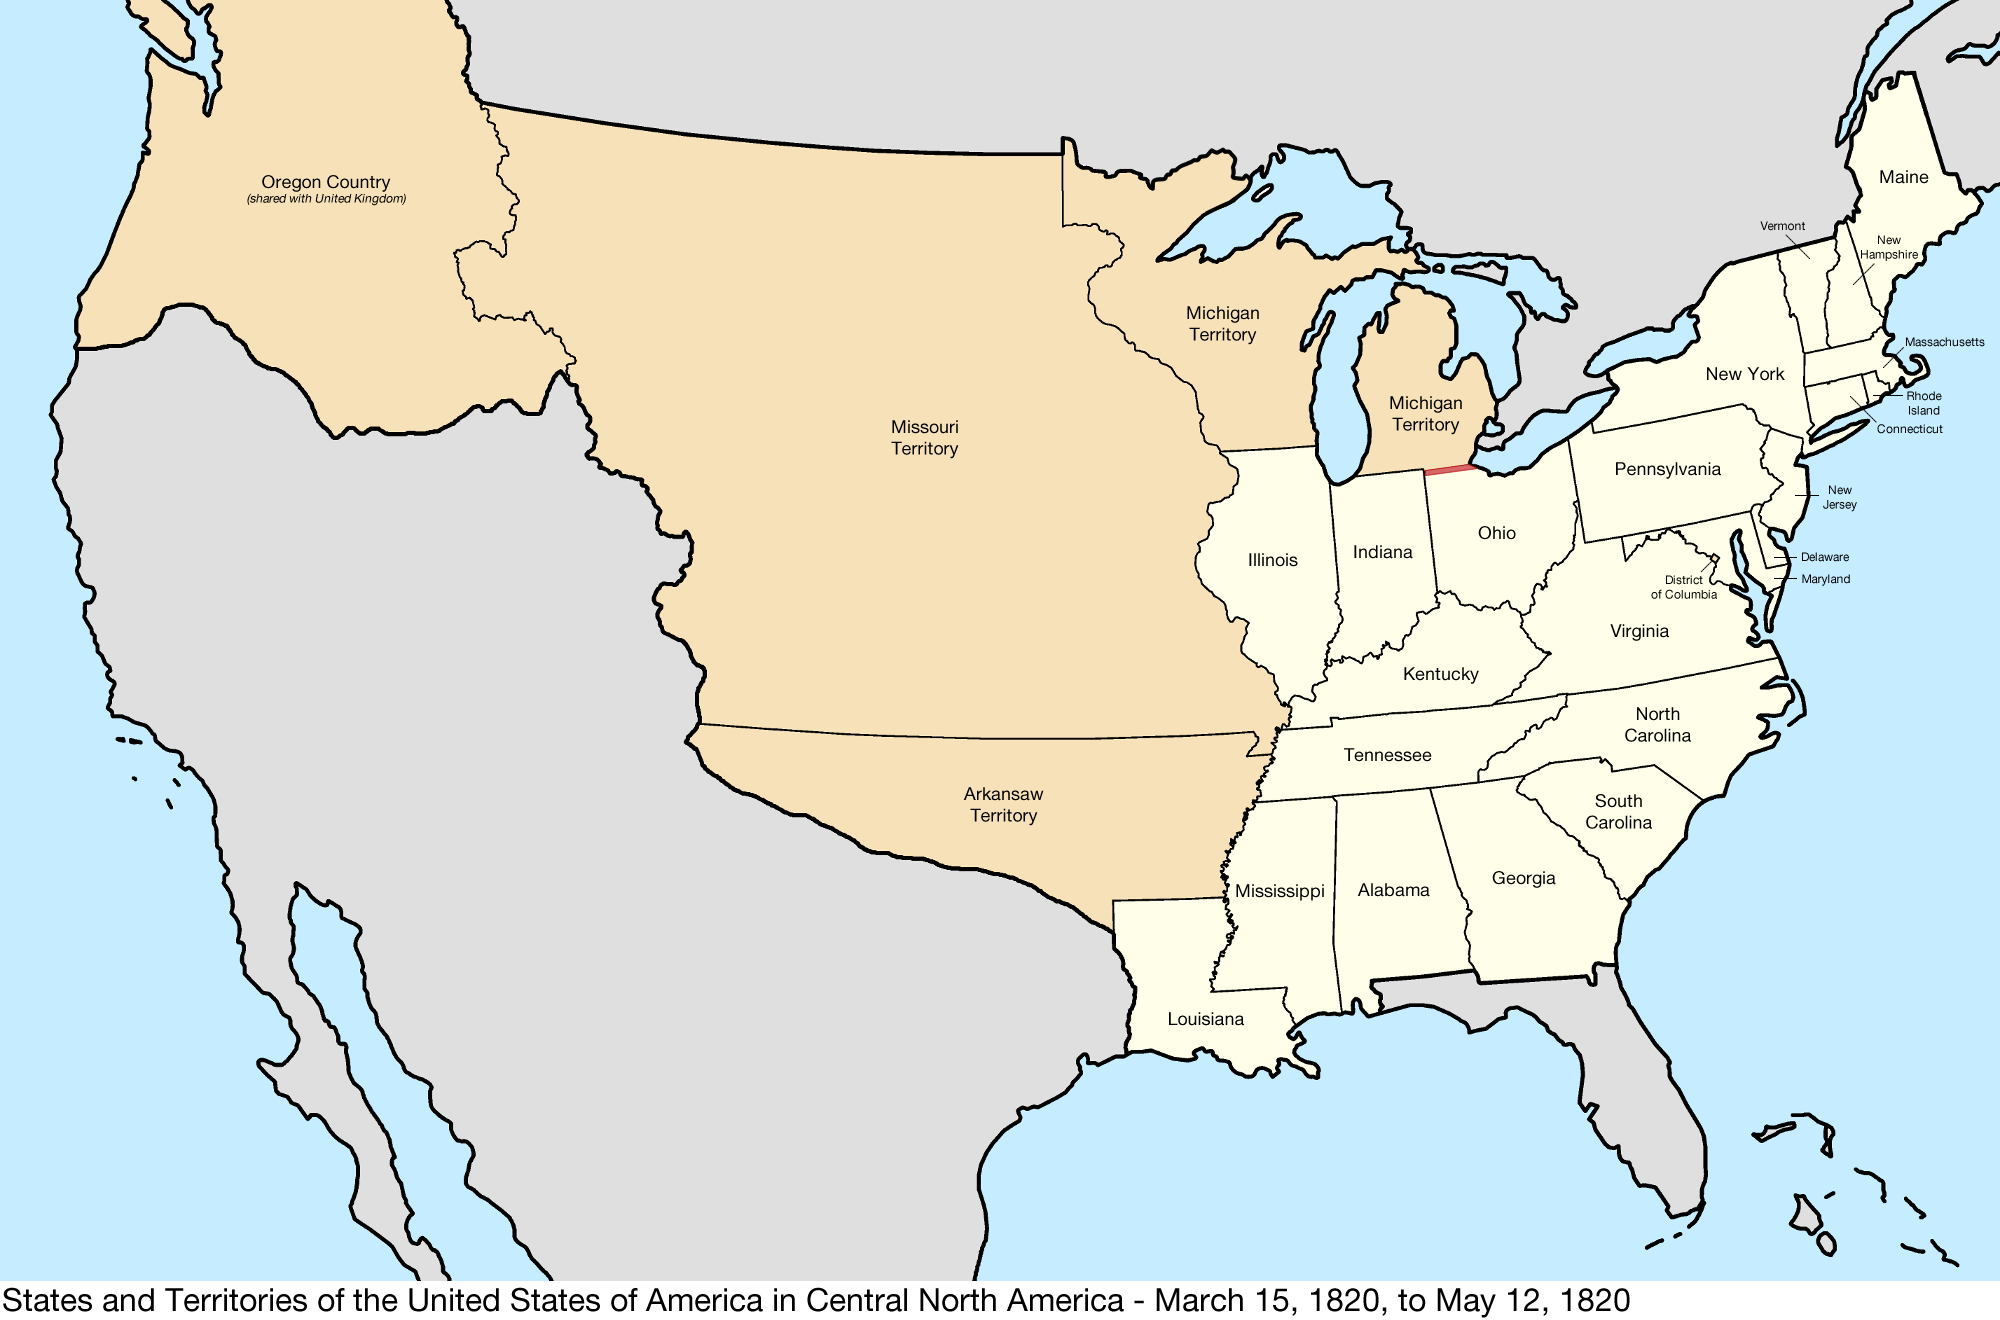 File:United States Central map 1820 03 15 to 1820 04 21.png